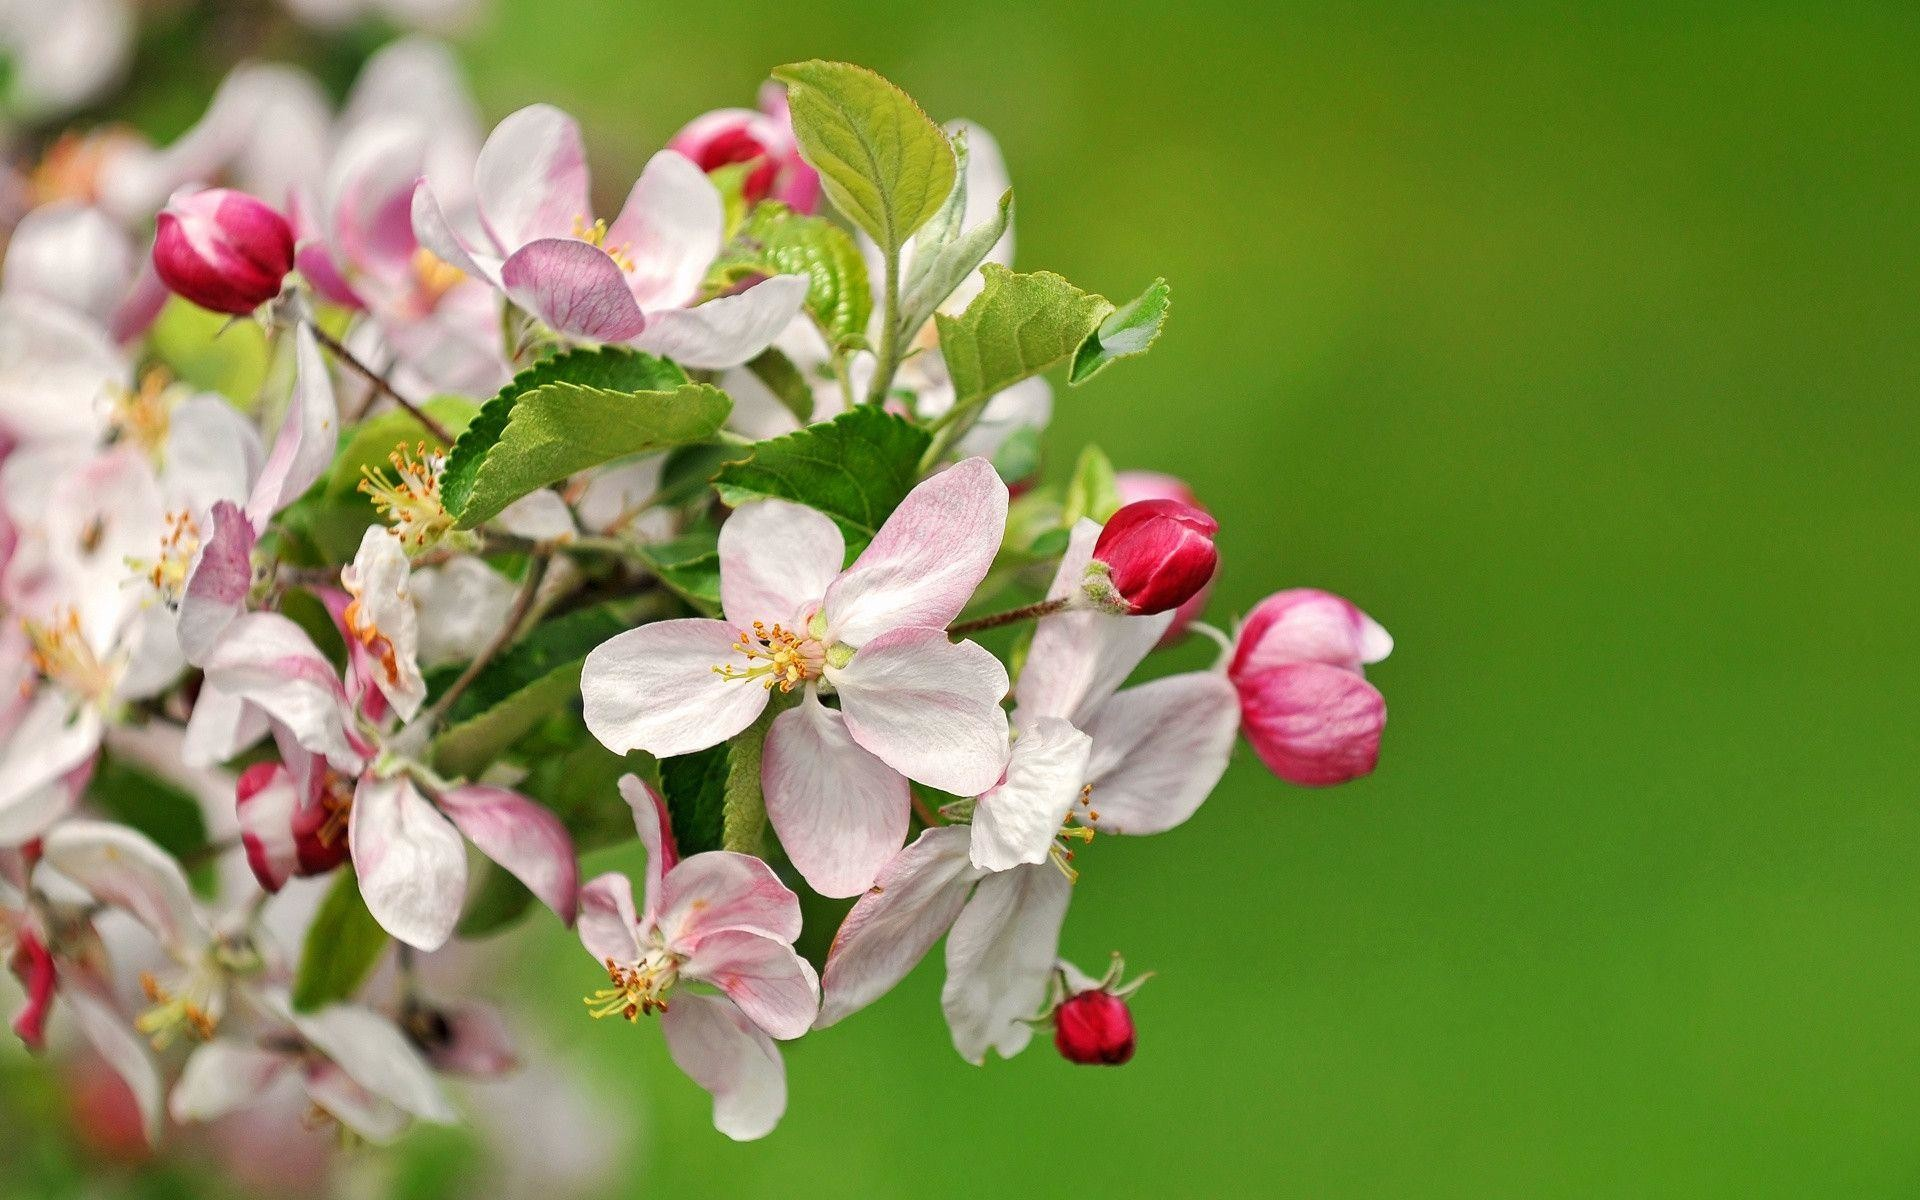 Wallpaper HD Apple Blossoms, Beautiful Apple Blossoms wallpapers .